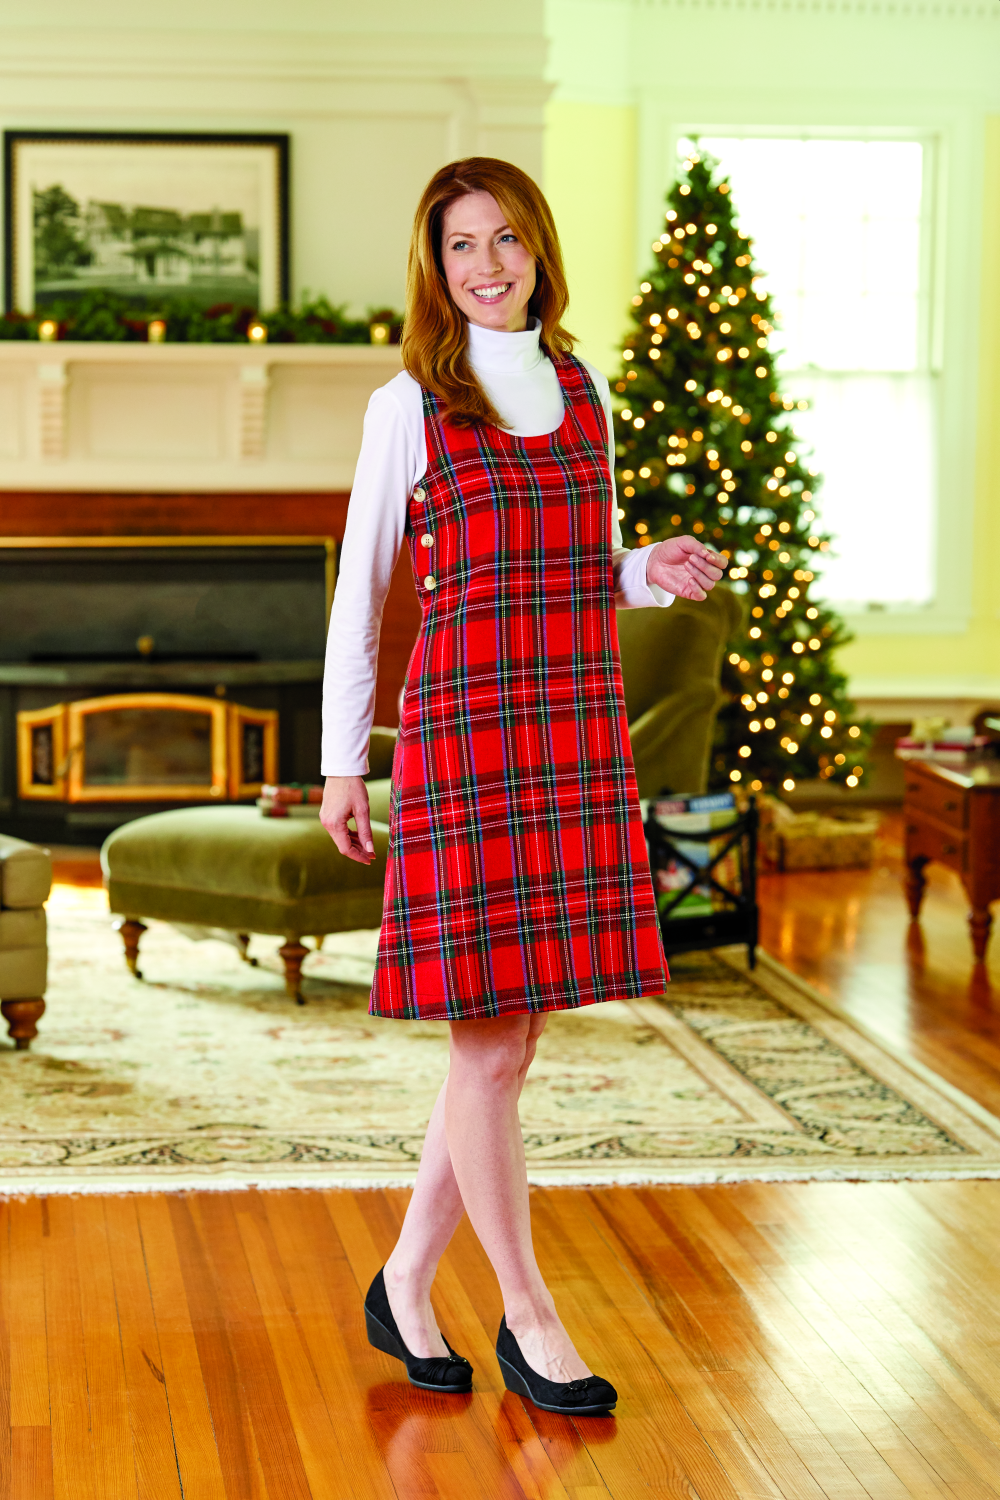 woman modeling Red Tartan Plaid Jumper in christmas living room scene